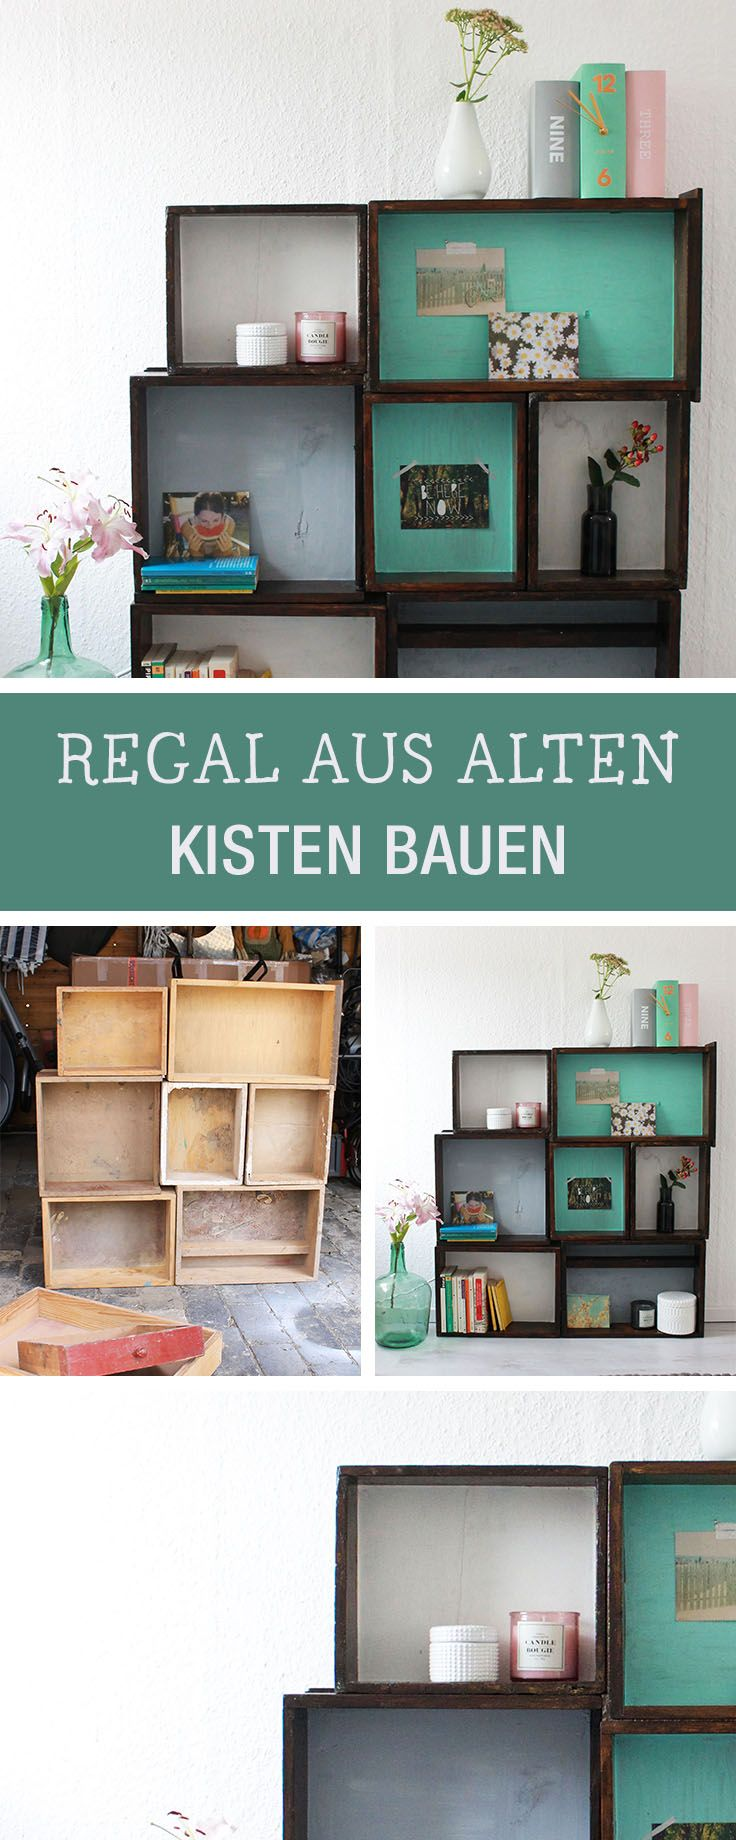 möbel selberbauen: regal aus kisten bauen / diy furniture: how to